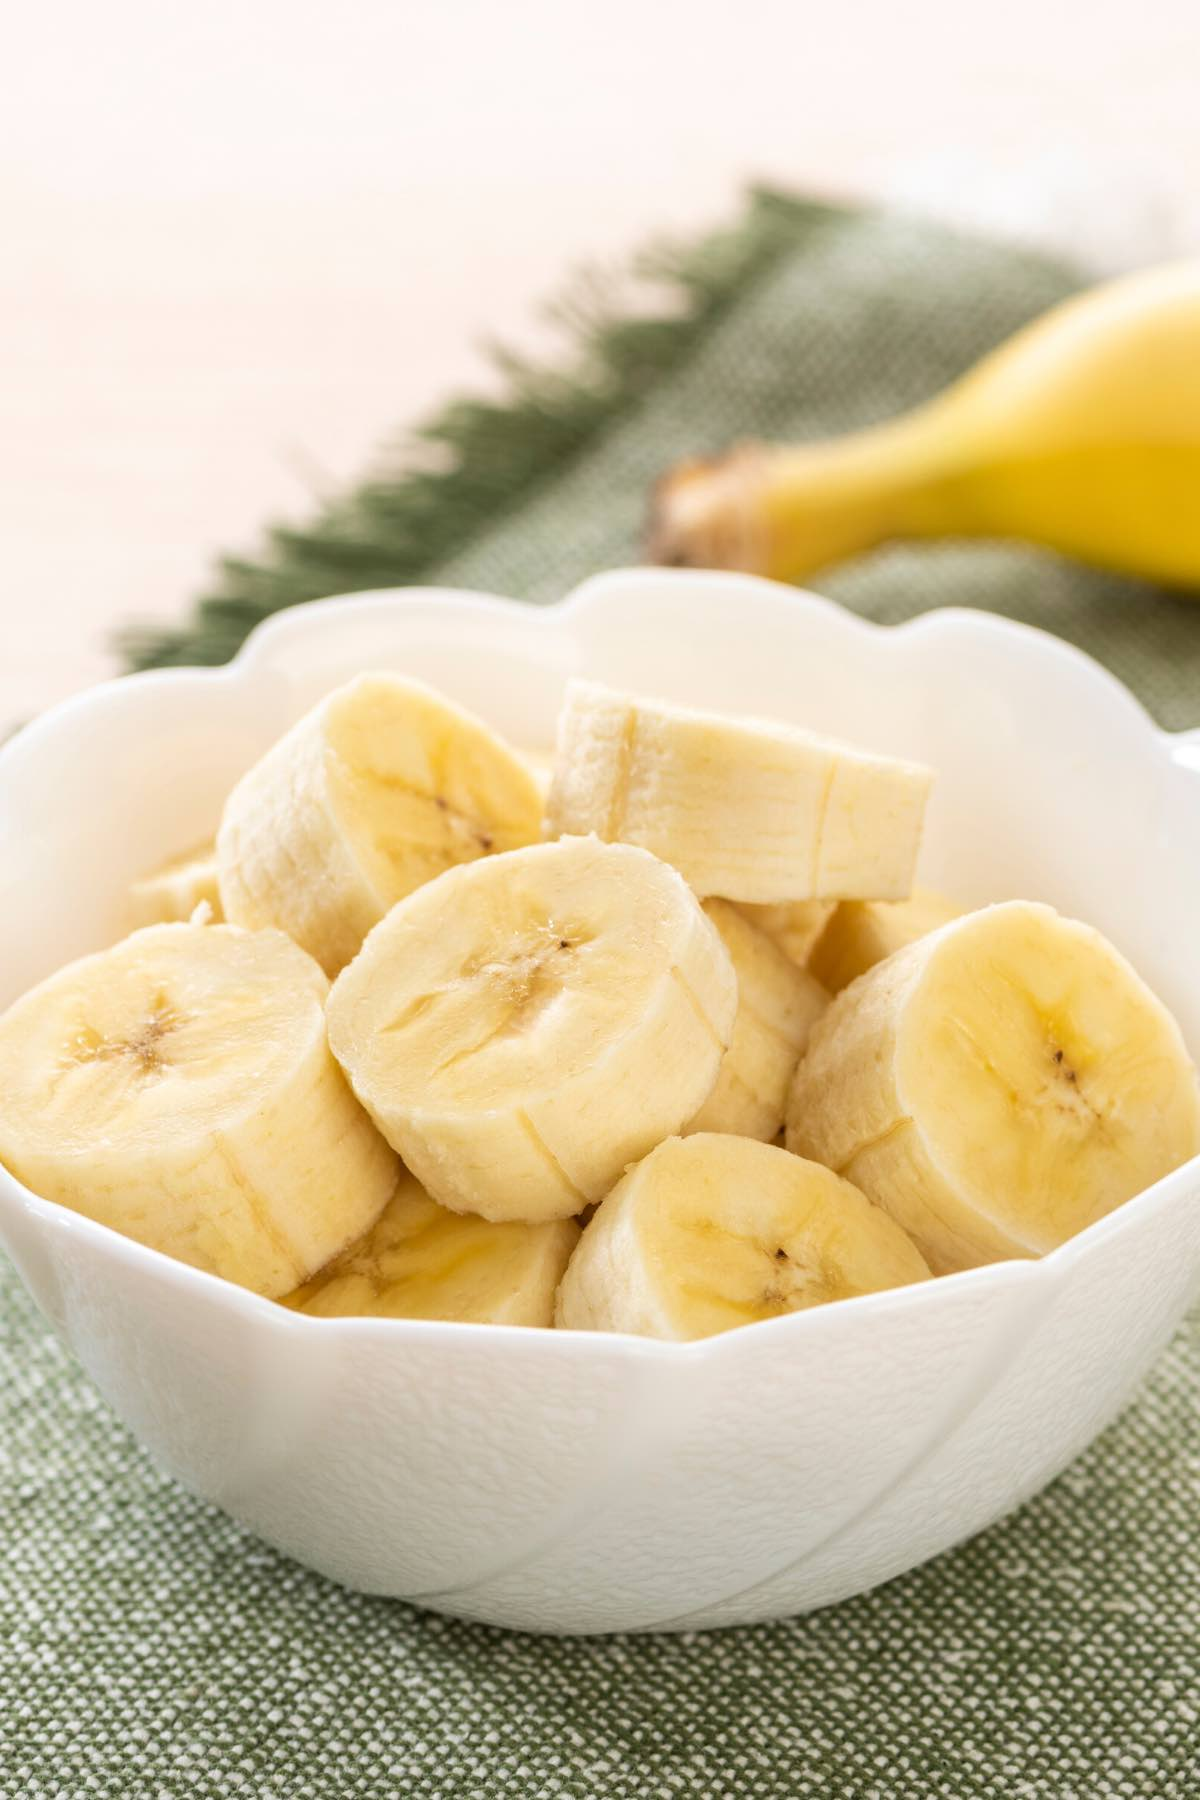 Sliced bananas in a bowl